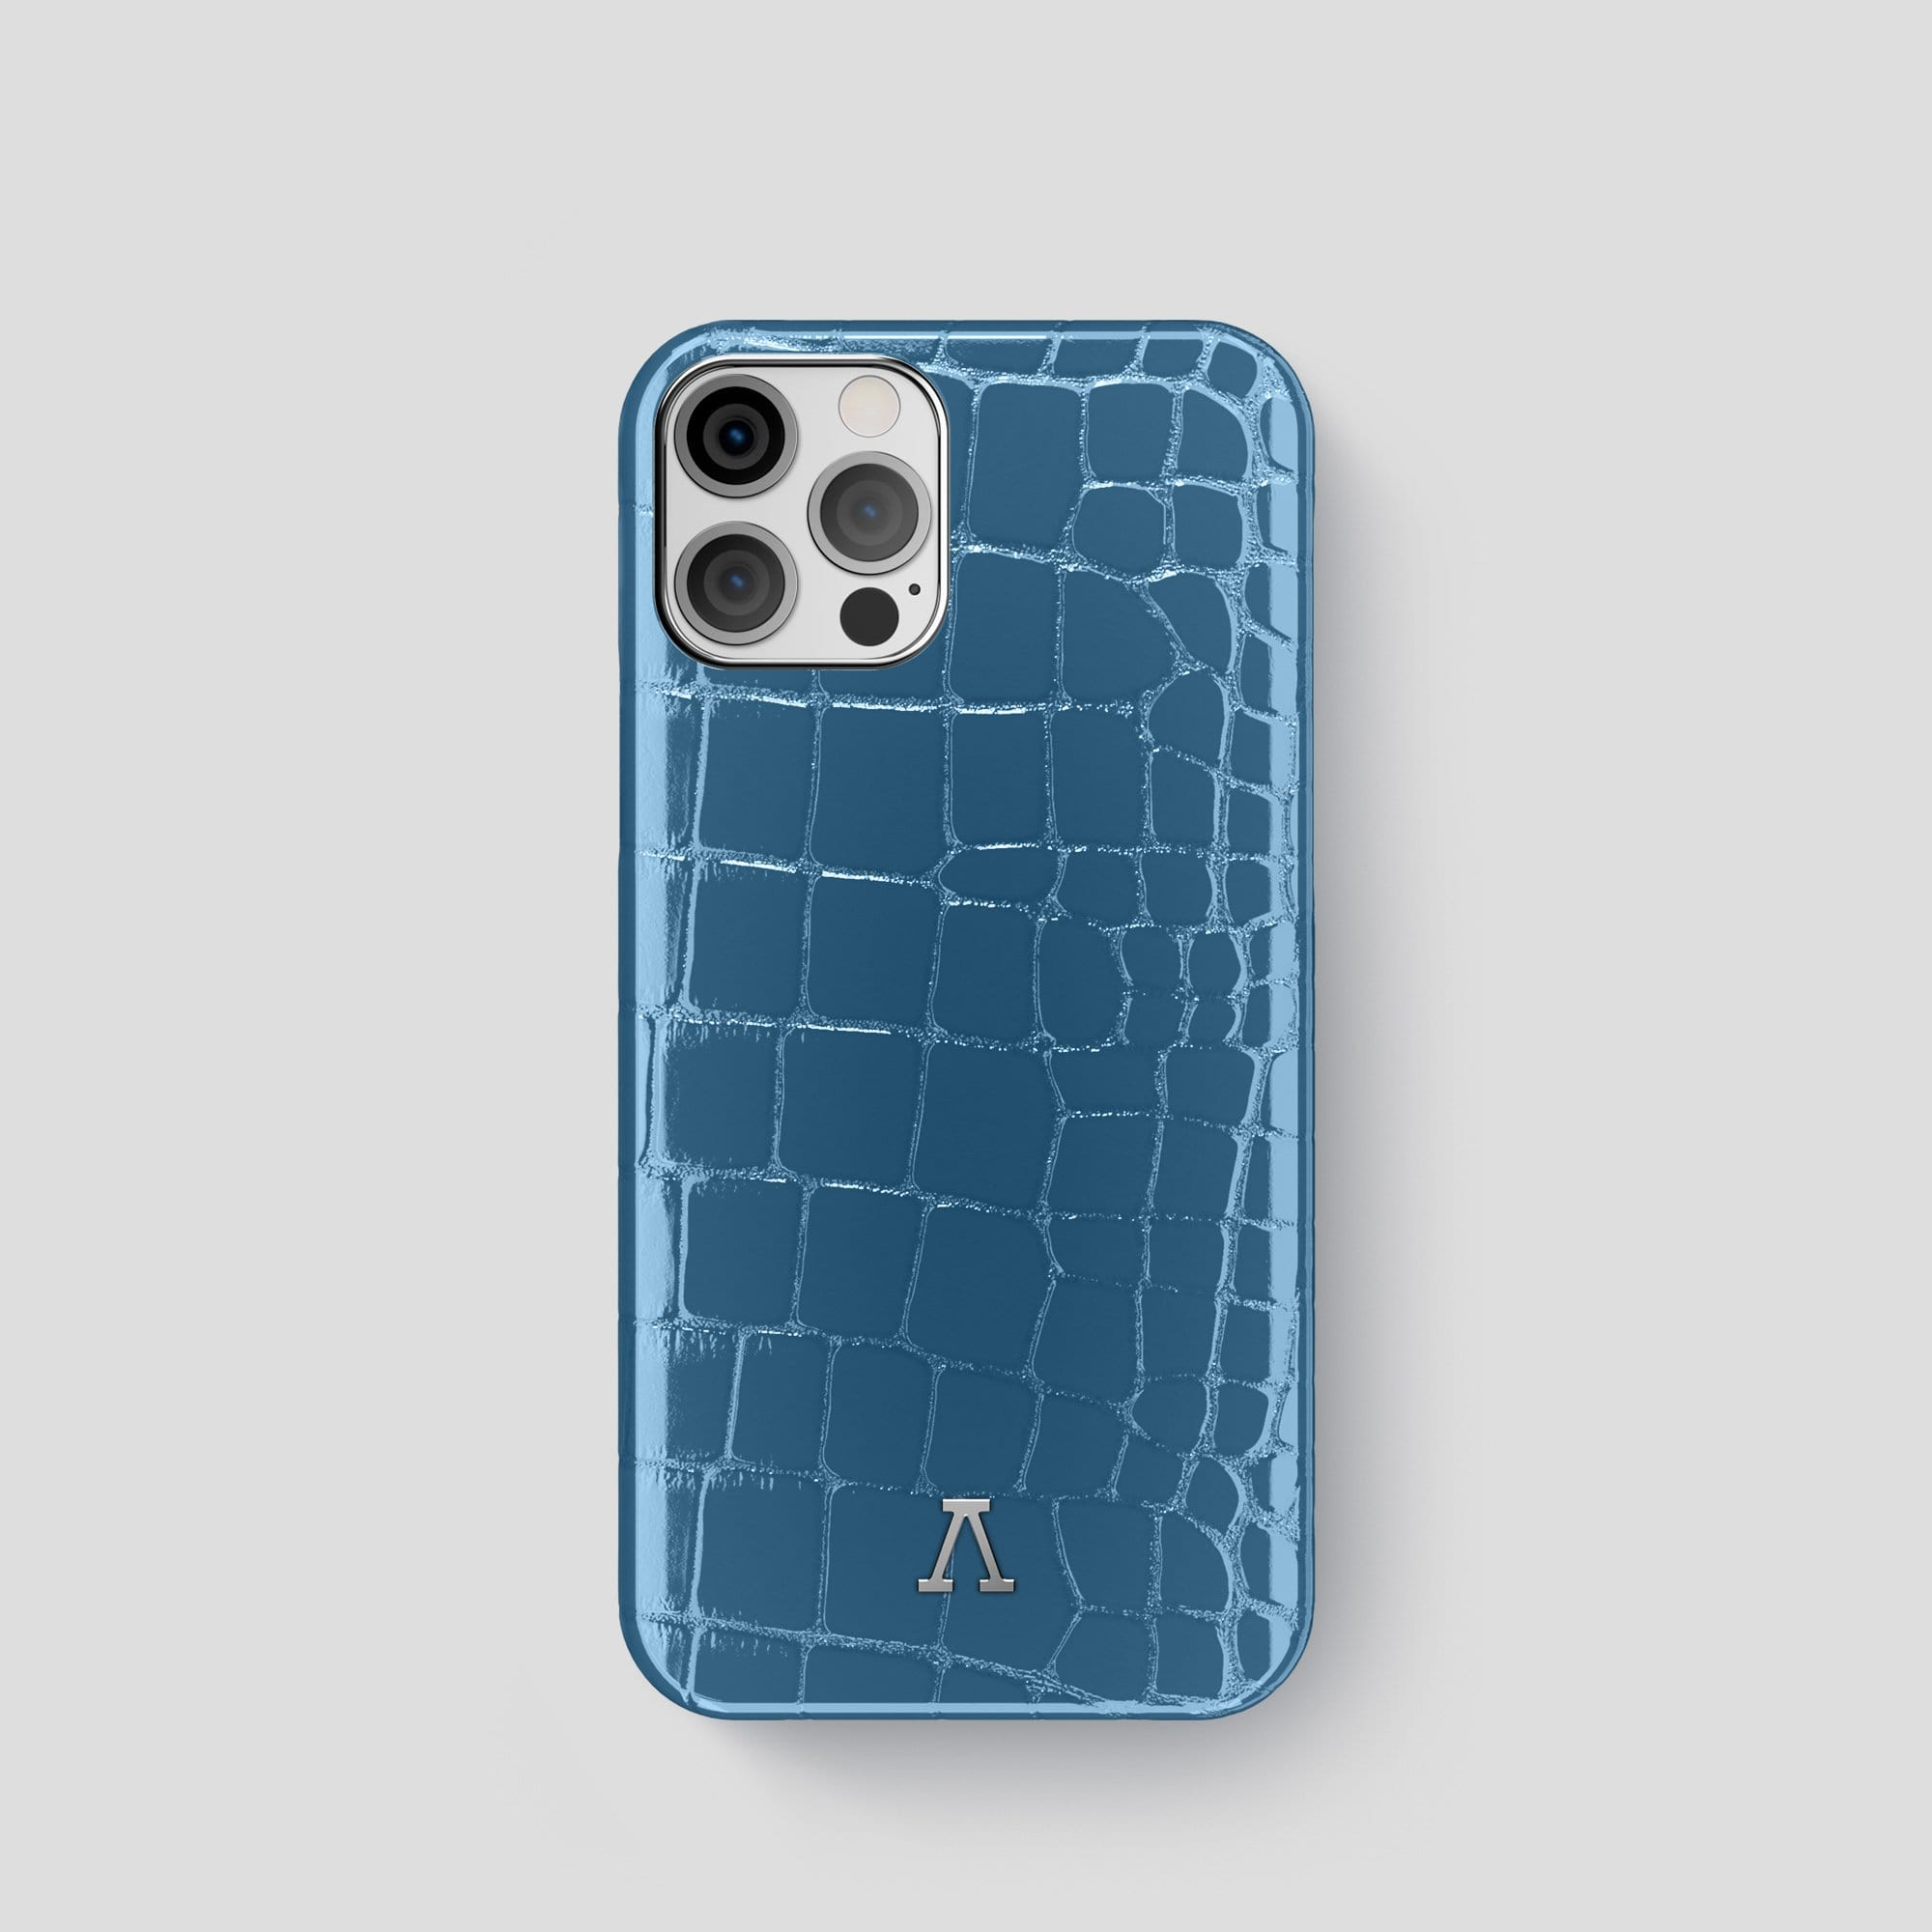 iPhone 12 Pro Classic Case Shiny Alligator